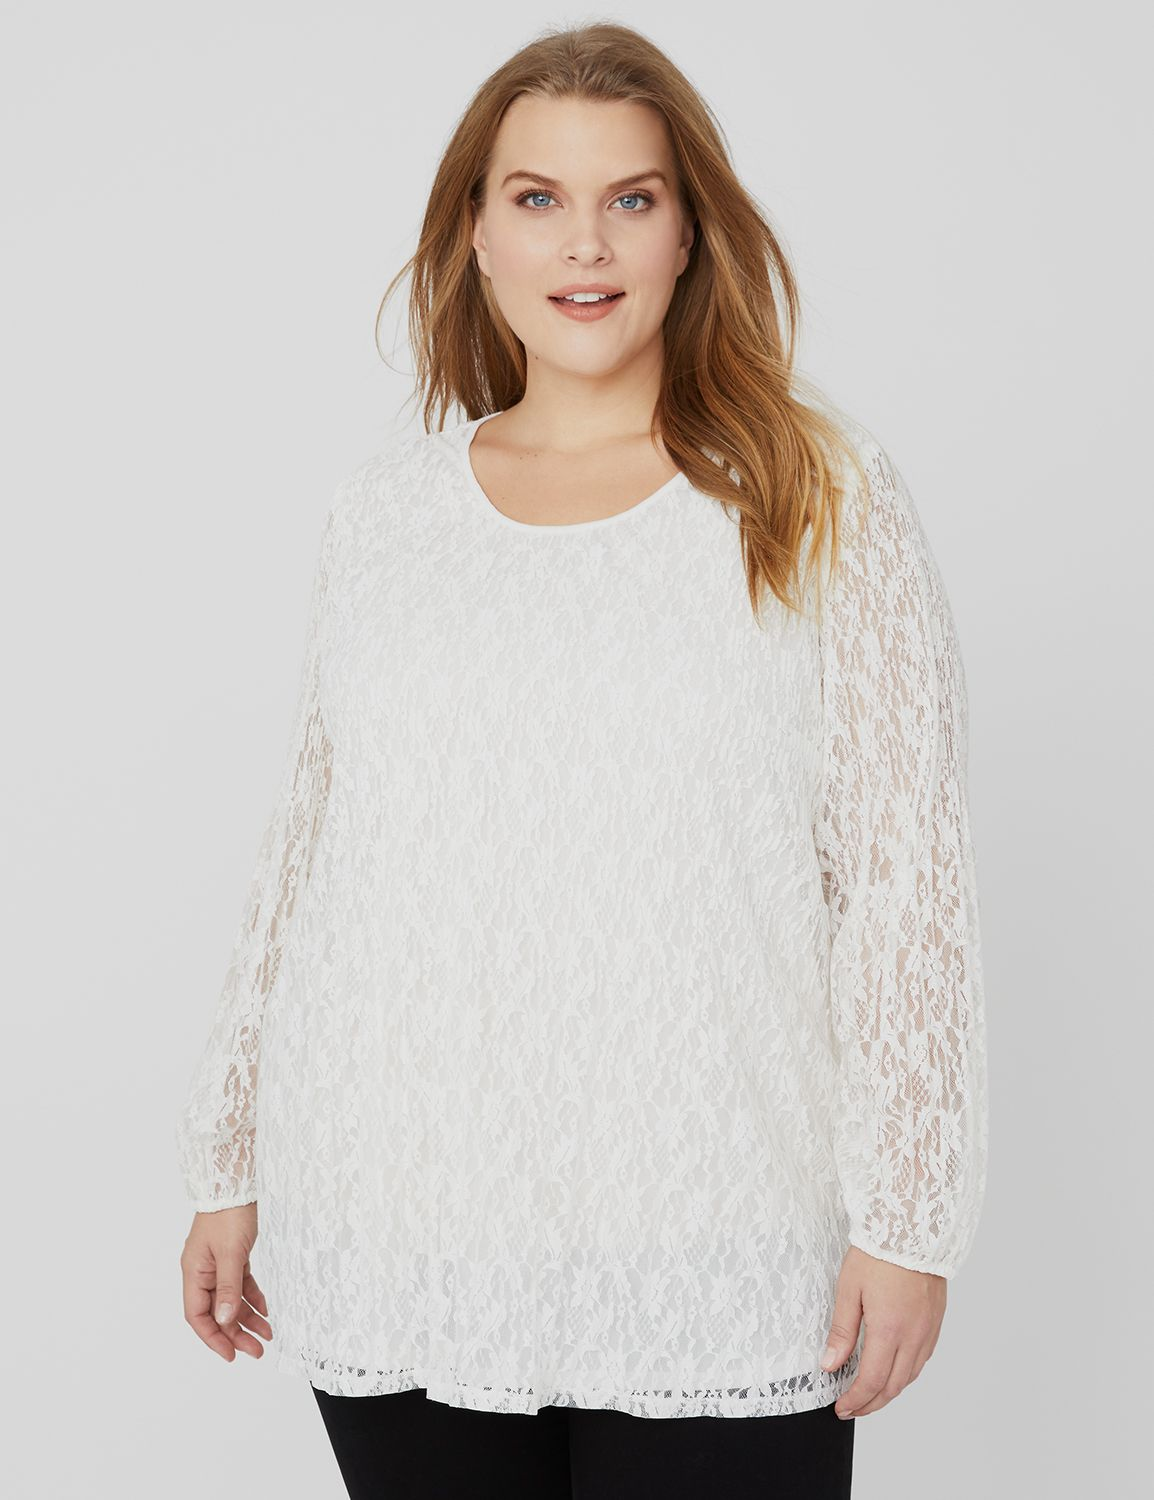 Pleated Lace Top Lace Cold Shoulder Pleater MP-300088766